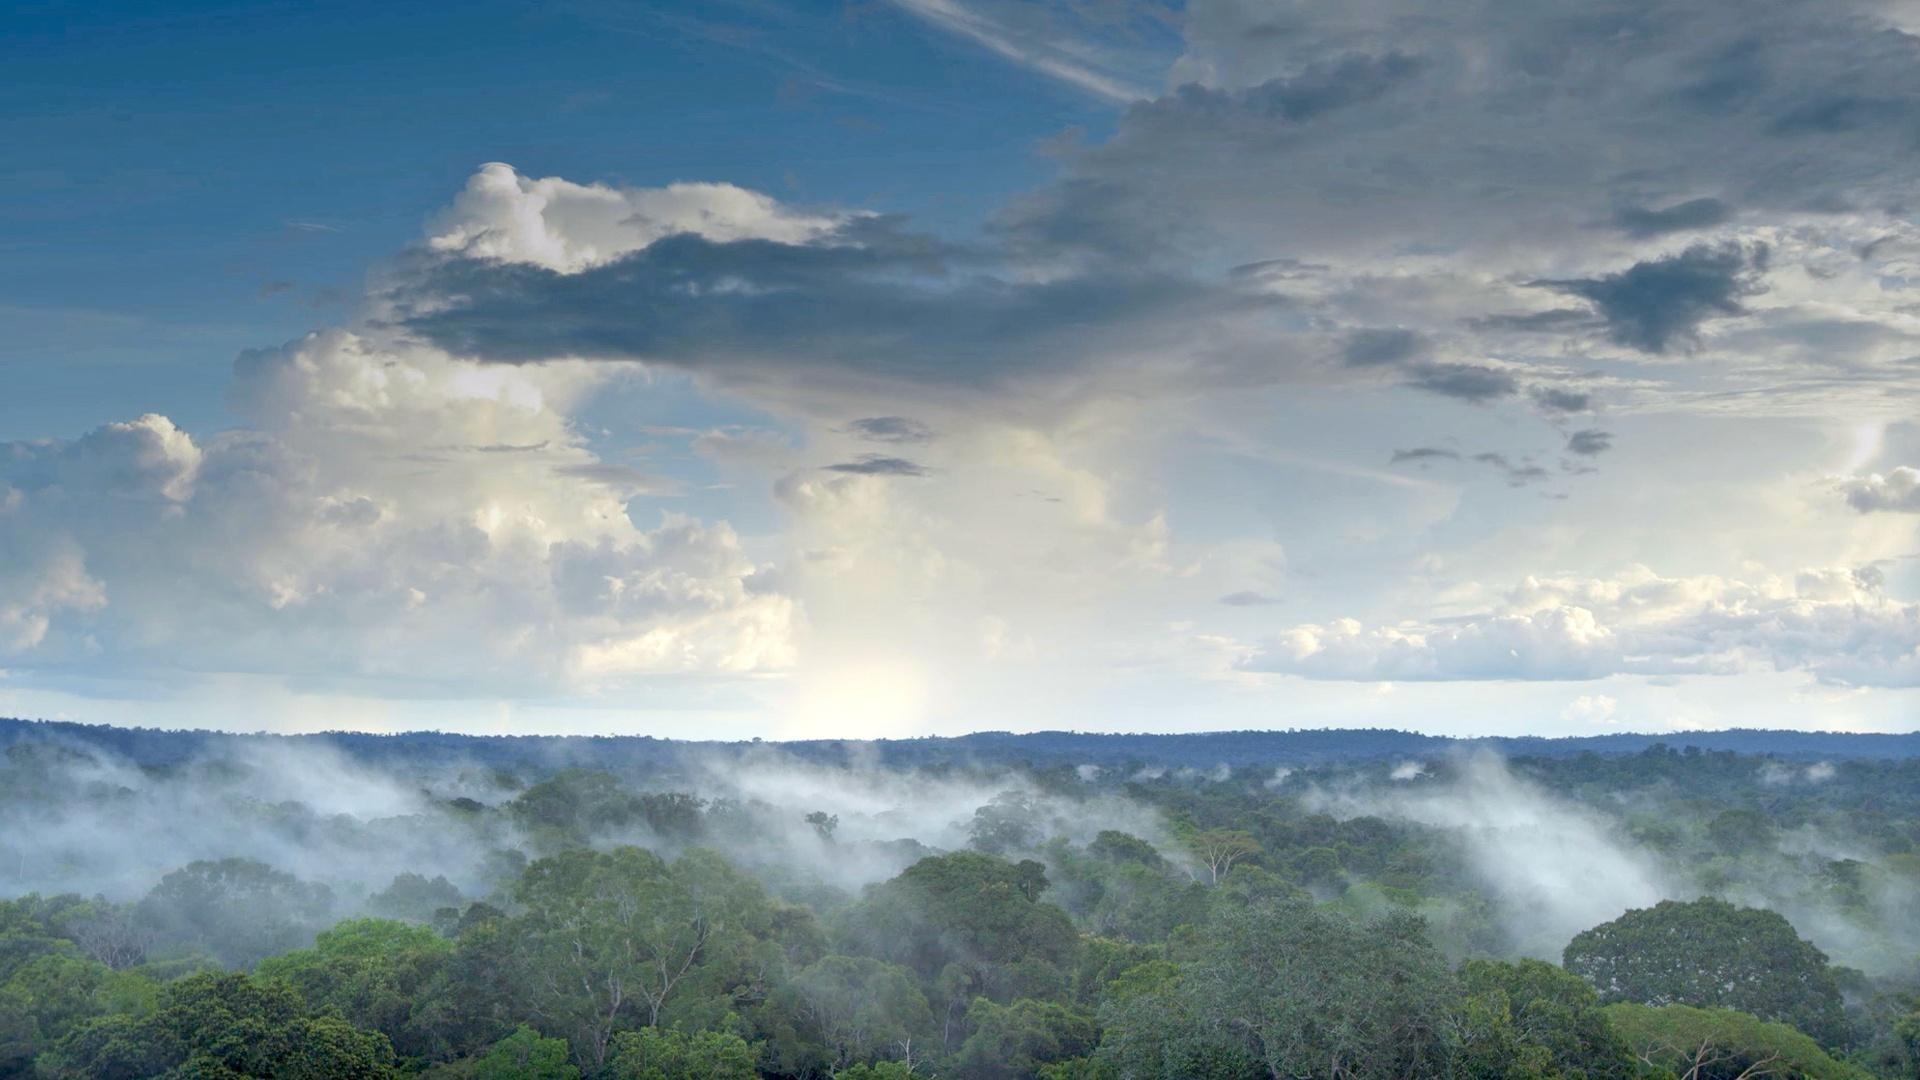 In the Amazon rainforest, 400 billion trees pump a staggering 20 billions of water each day into the sky, creating 'rivers in the sky'.